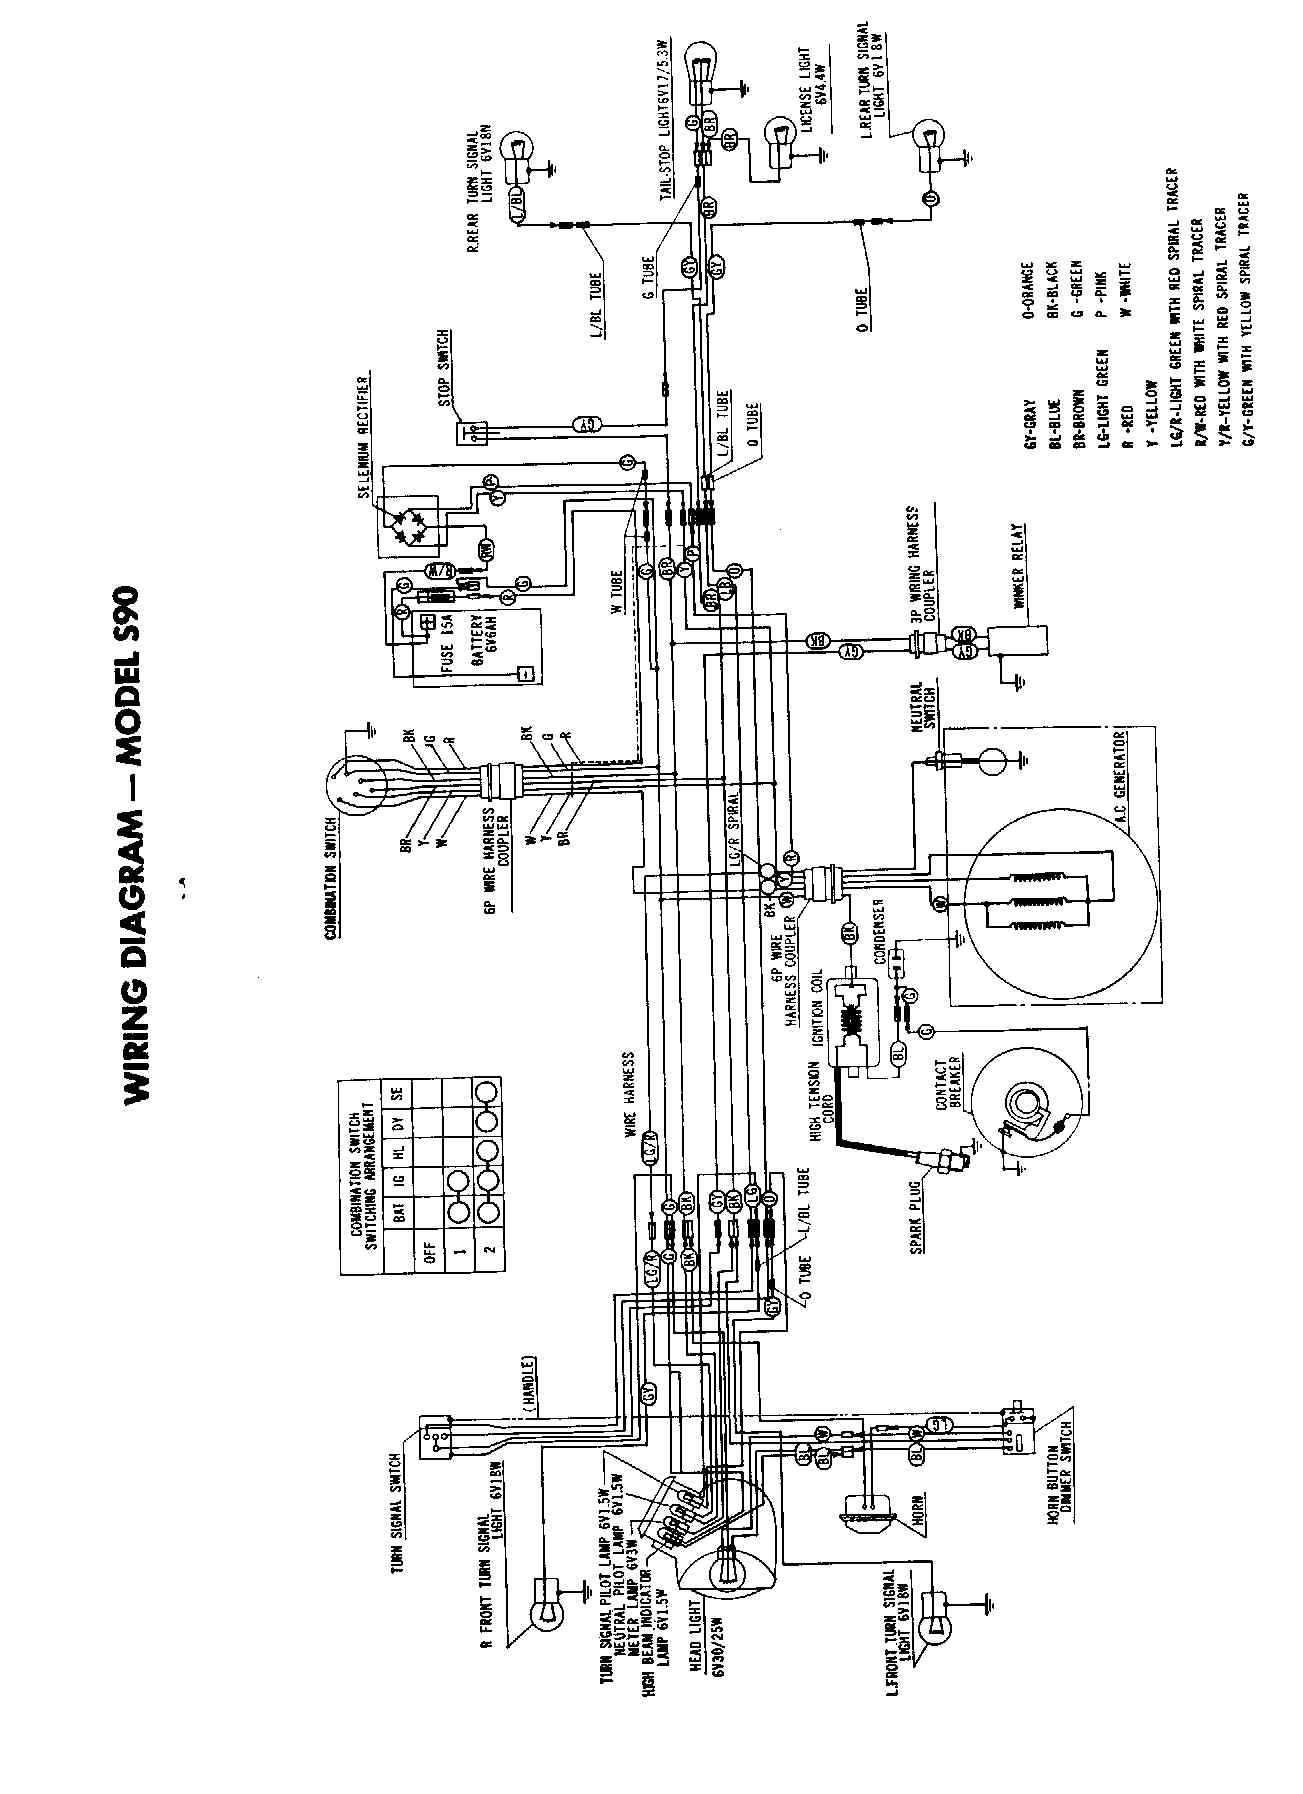 1979 honda xr500 wiring diagram